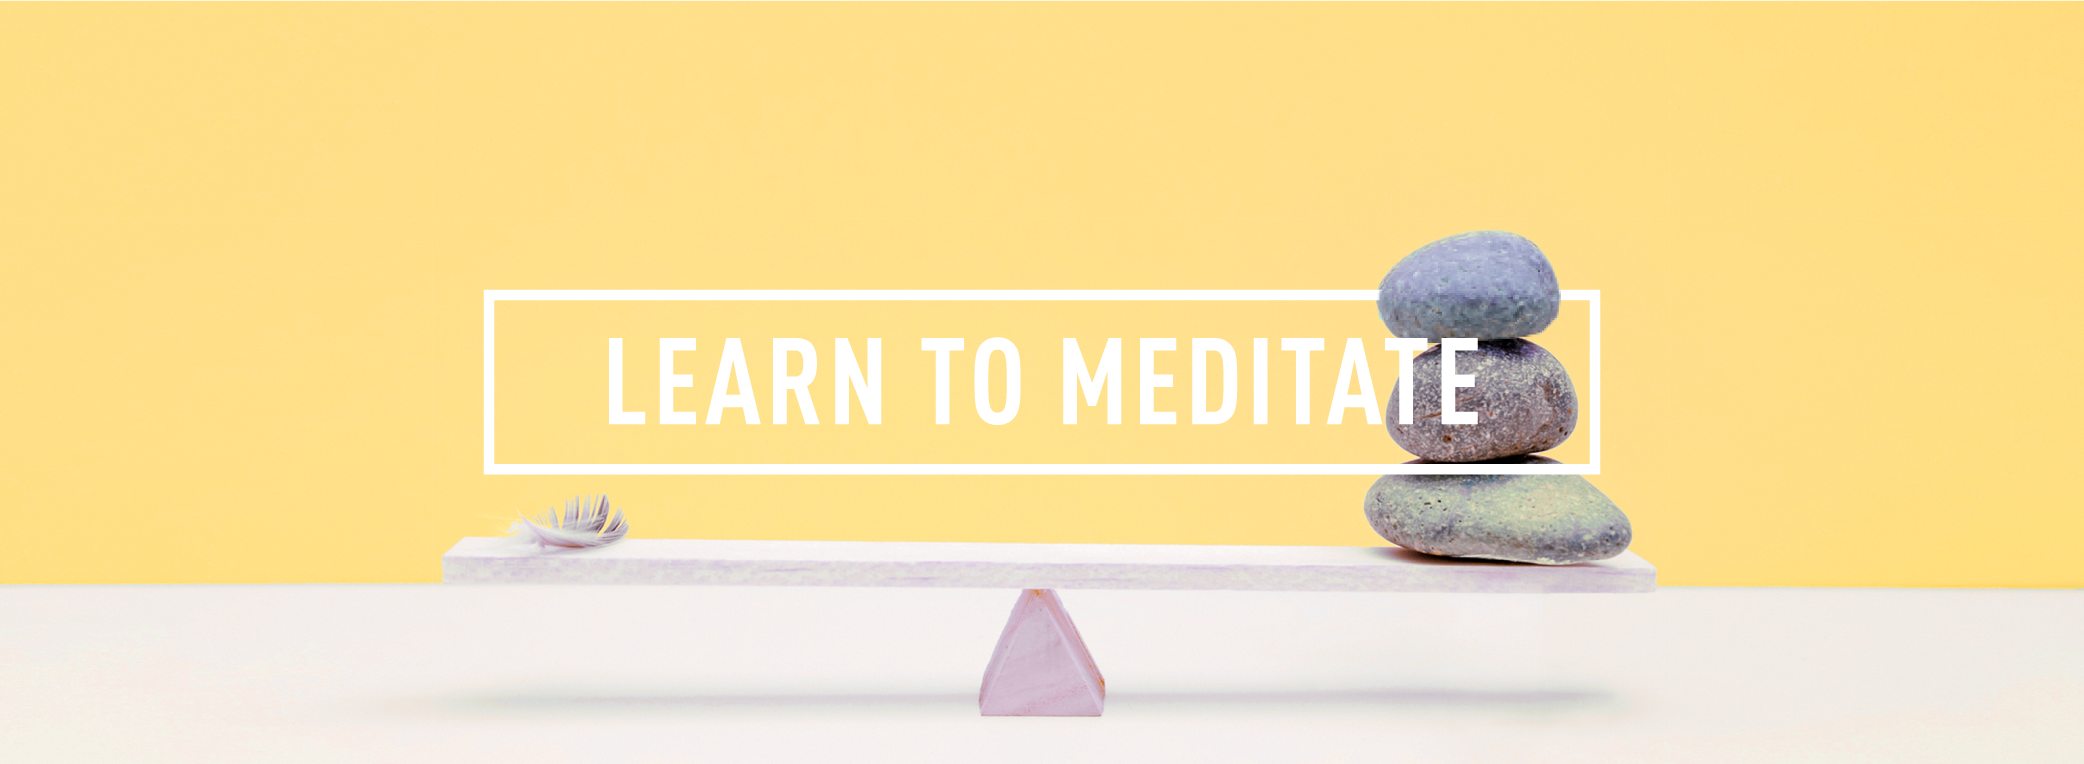 LEARN TO MEDITATE_Webpage Header